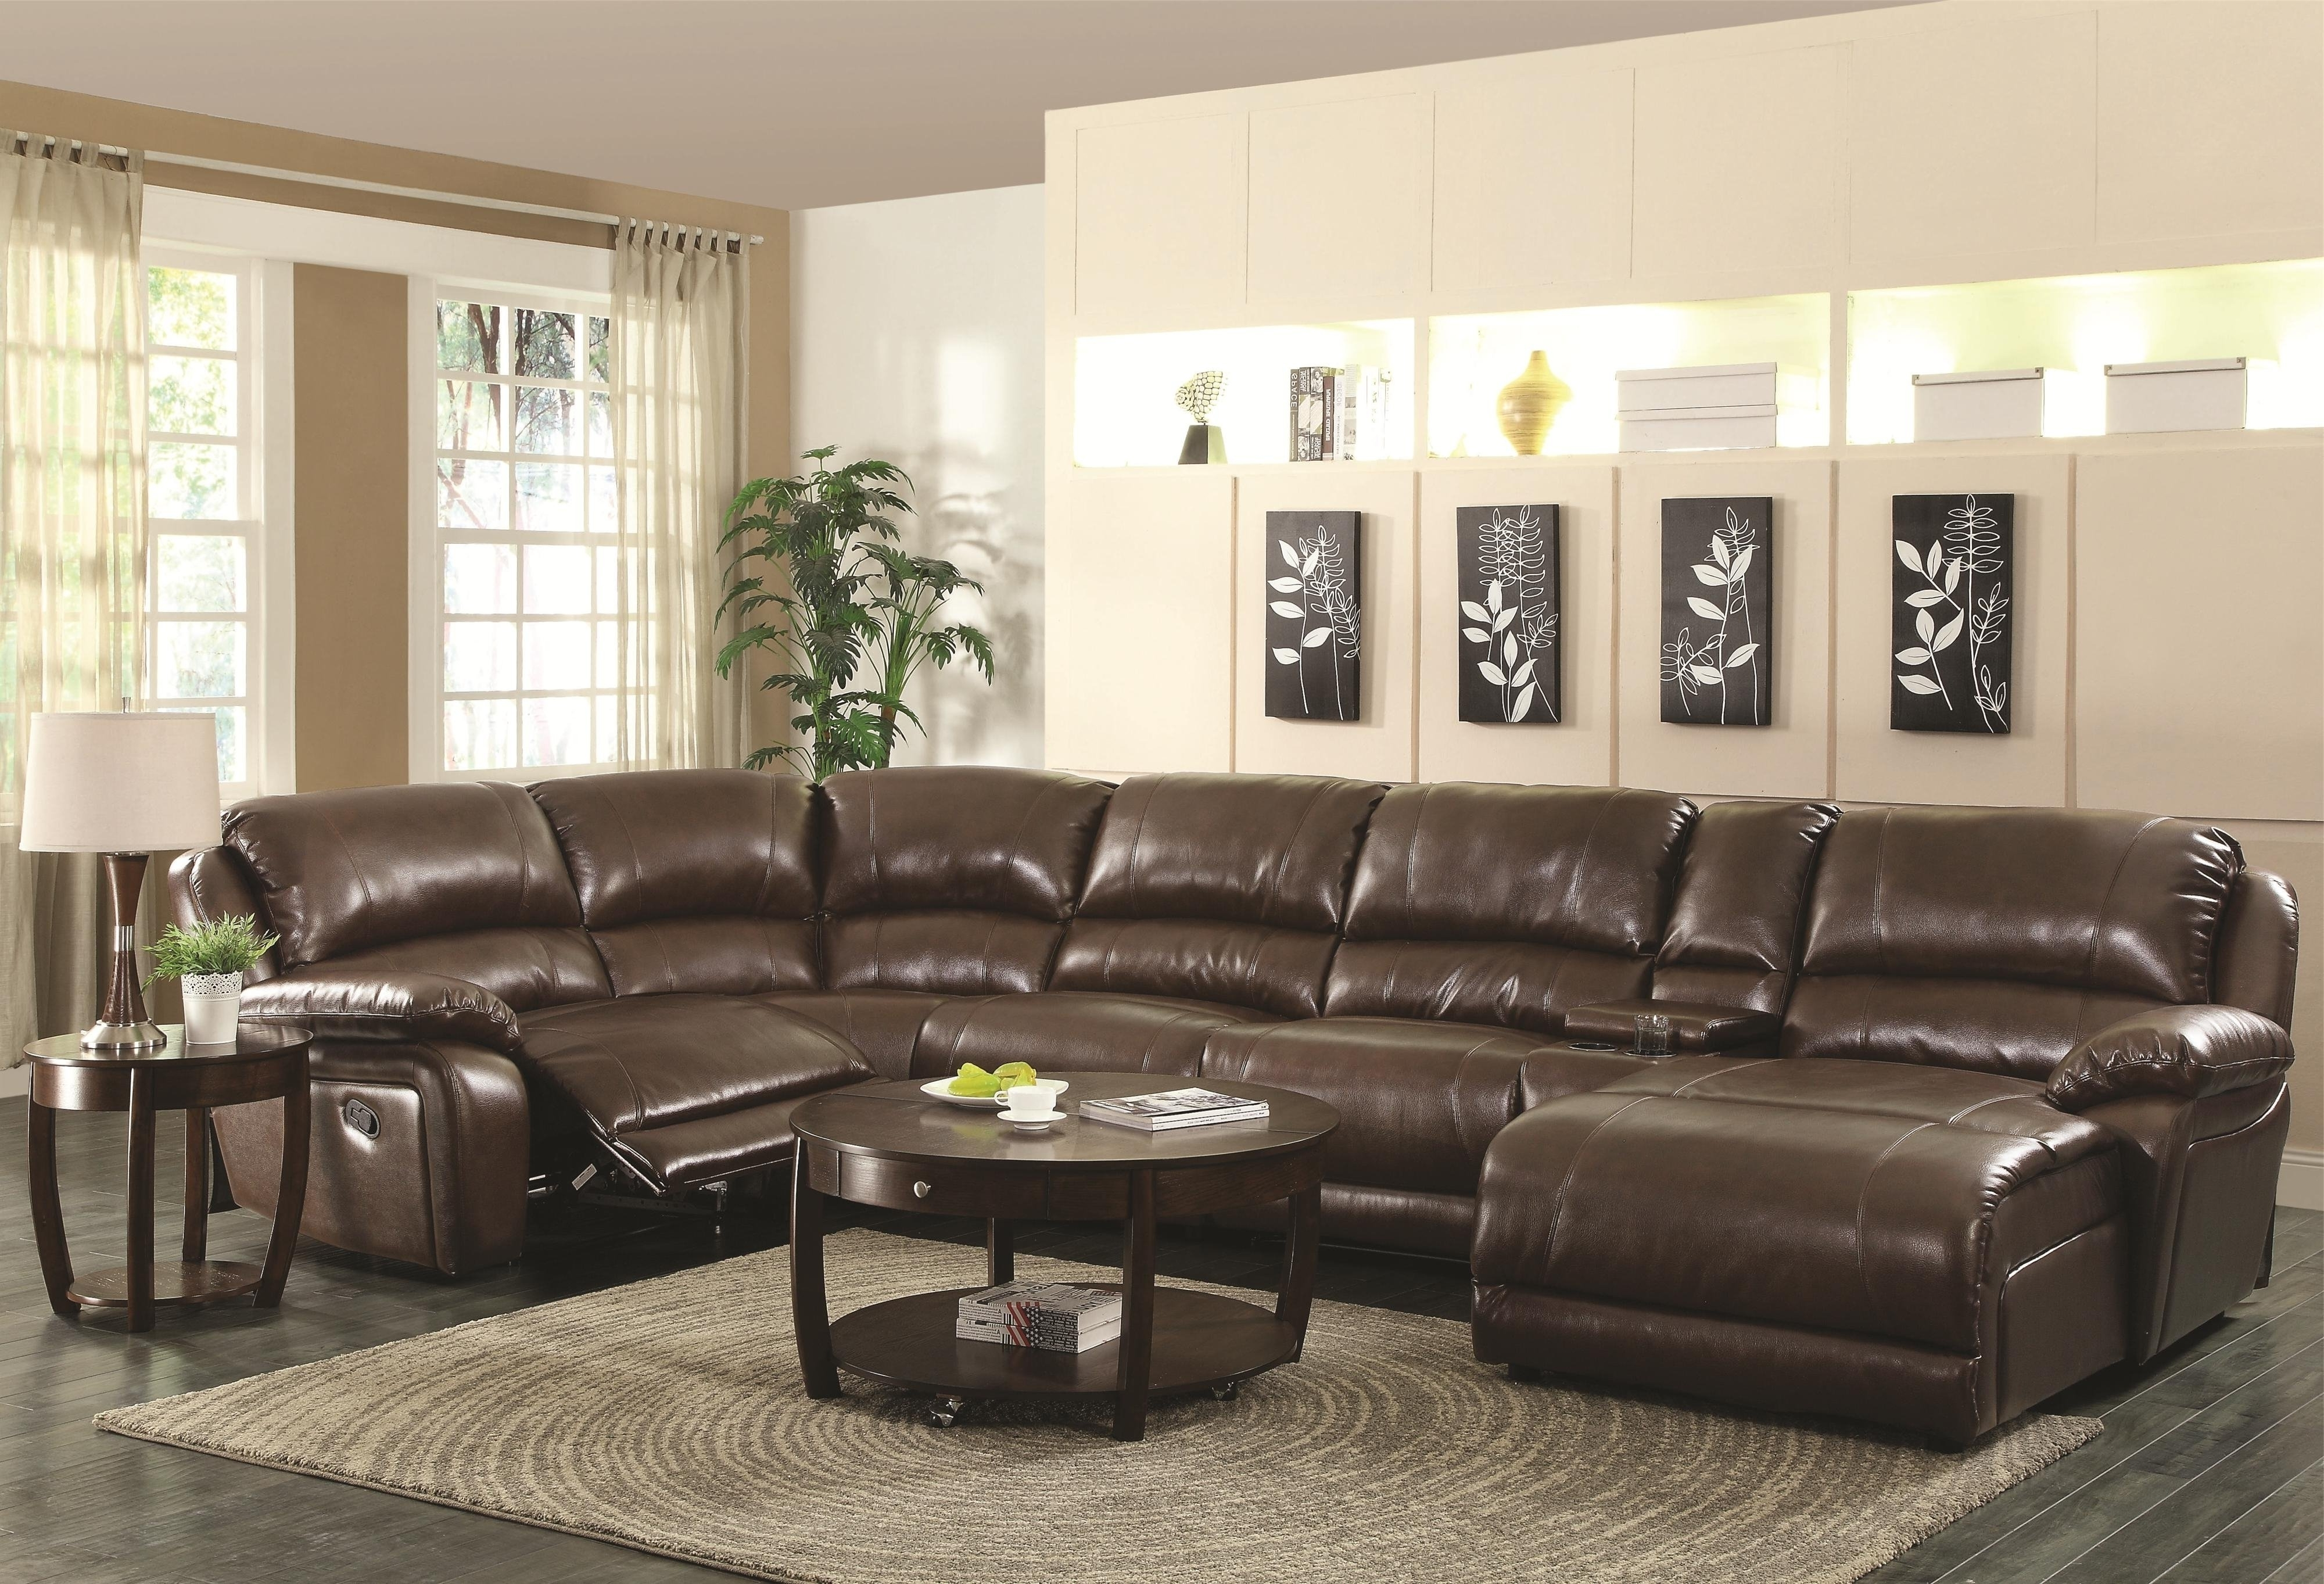 Sectional Sofa With Recliners – Pelagia With Regard To Well Liked Sectional Couches With Recliner And Chaise (View 12 of 15)